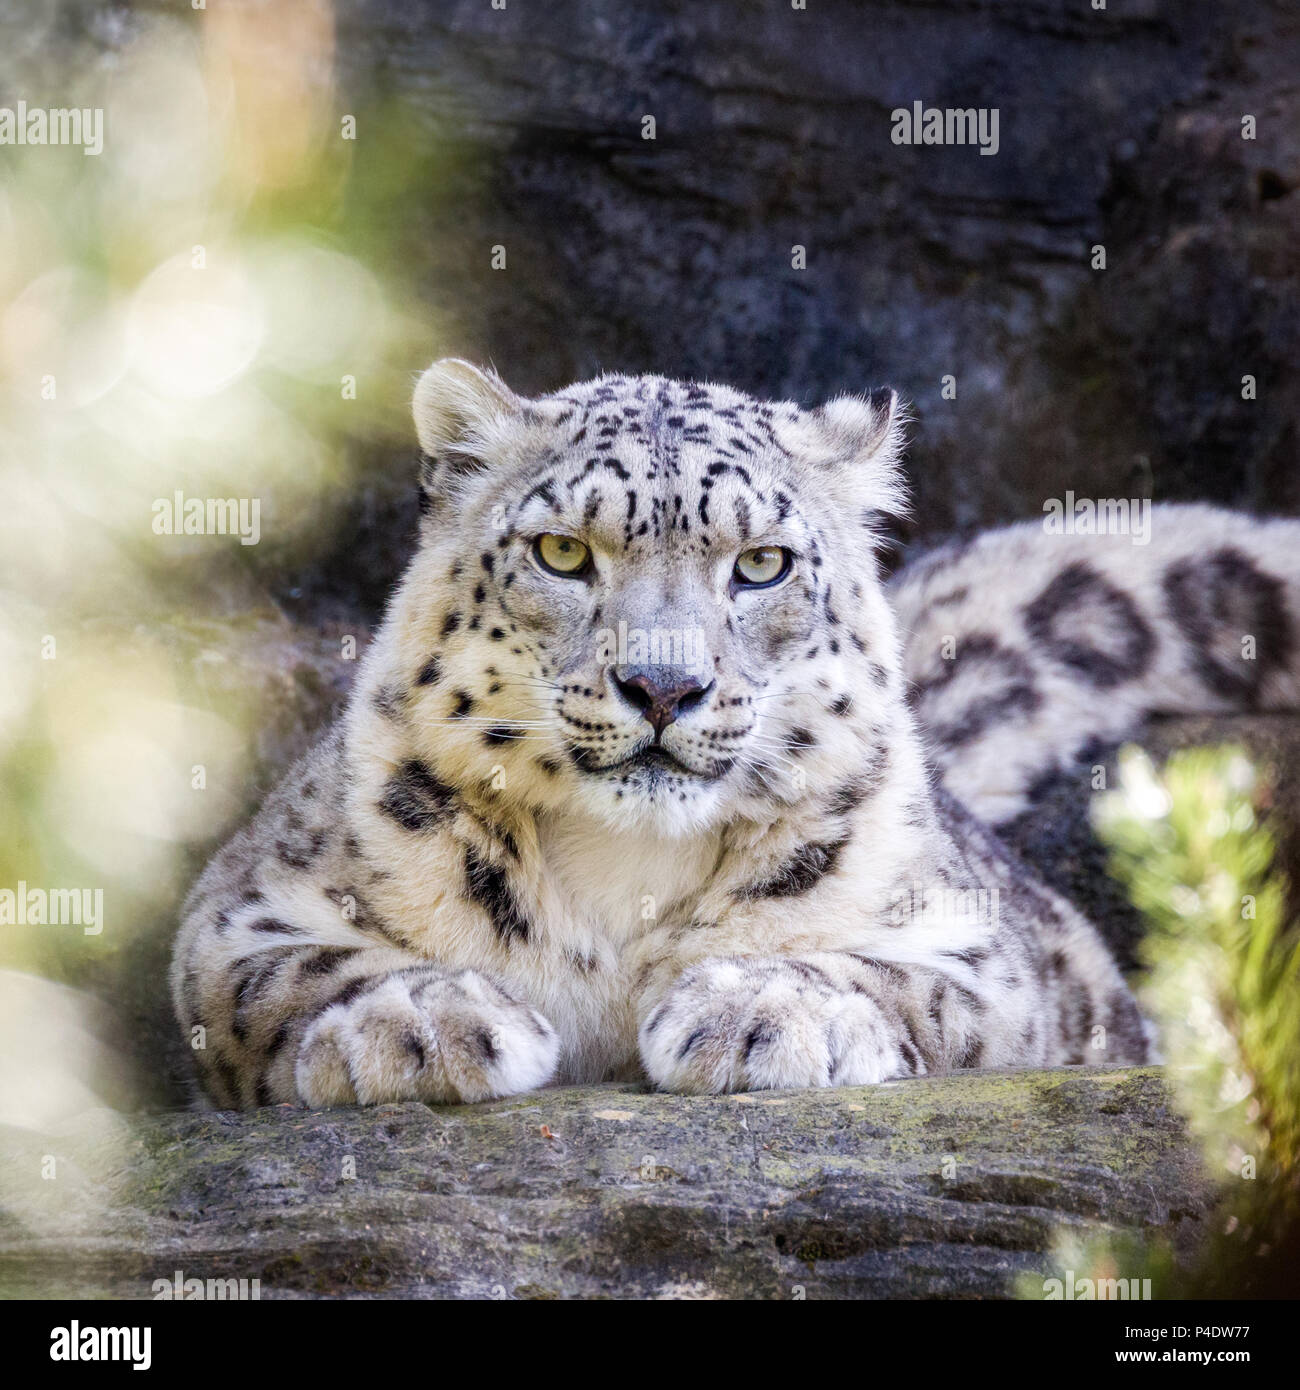 Snow Leopard attentif garde un œil attentif à travers le feuillage. Photo Stock